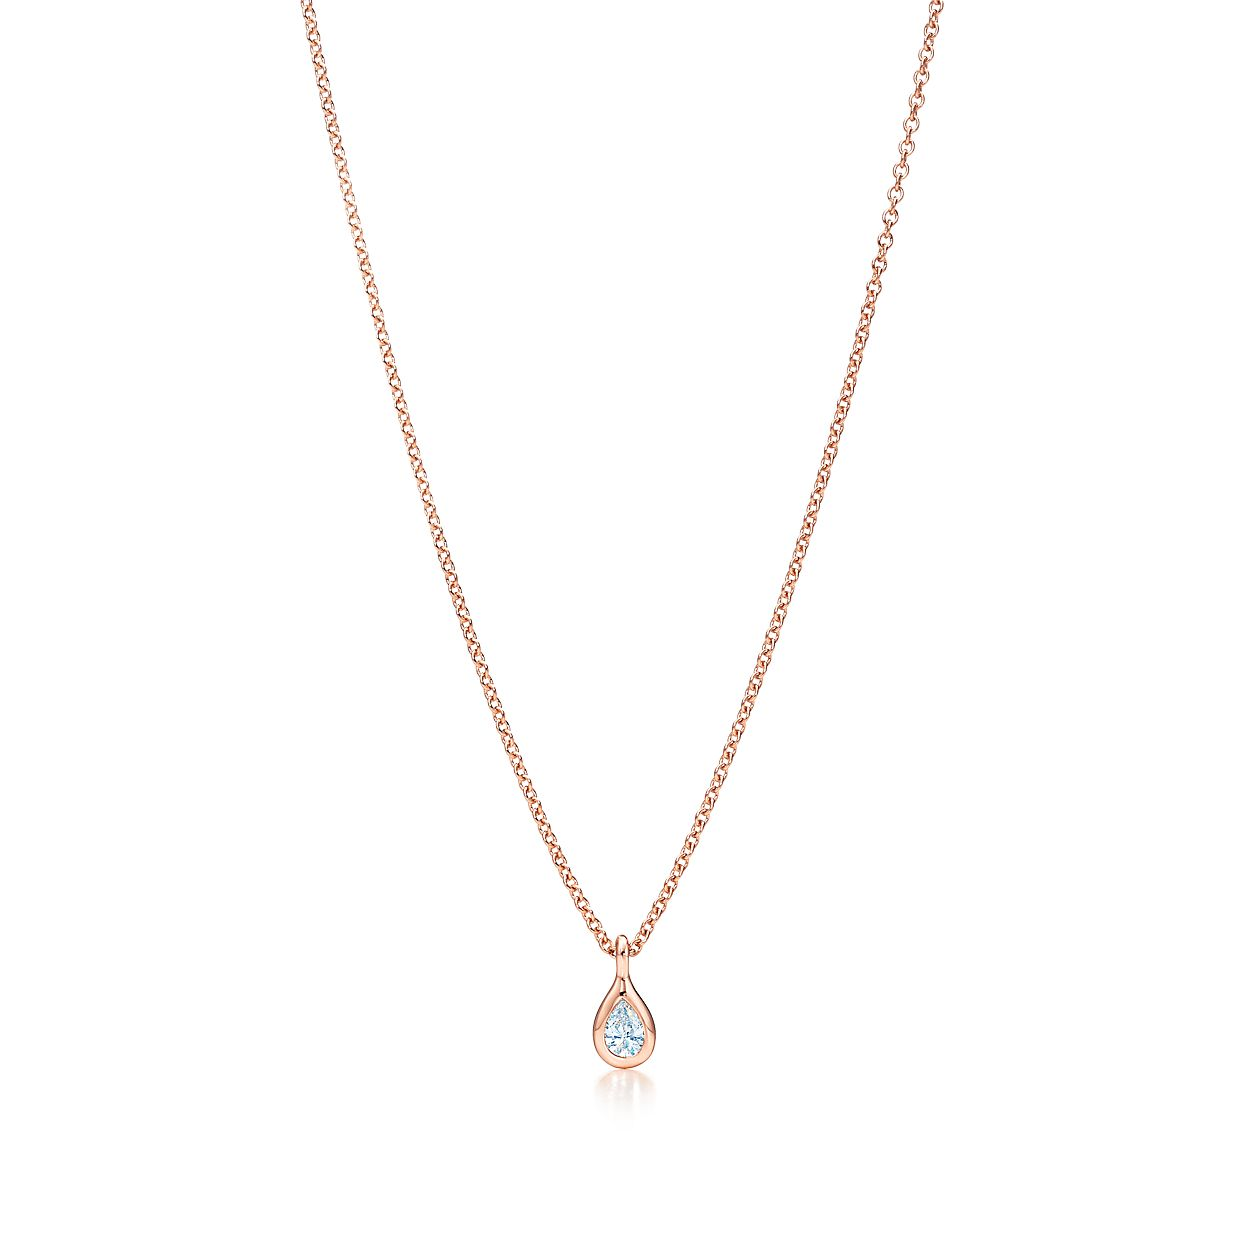 Elsa Peretti Diamonds by the Yard pendant in 18k rose gold - Size.17 Tiffany & Co. qjaN3M